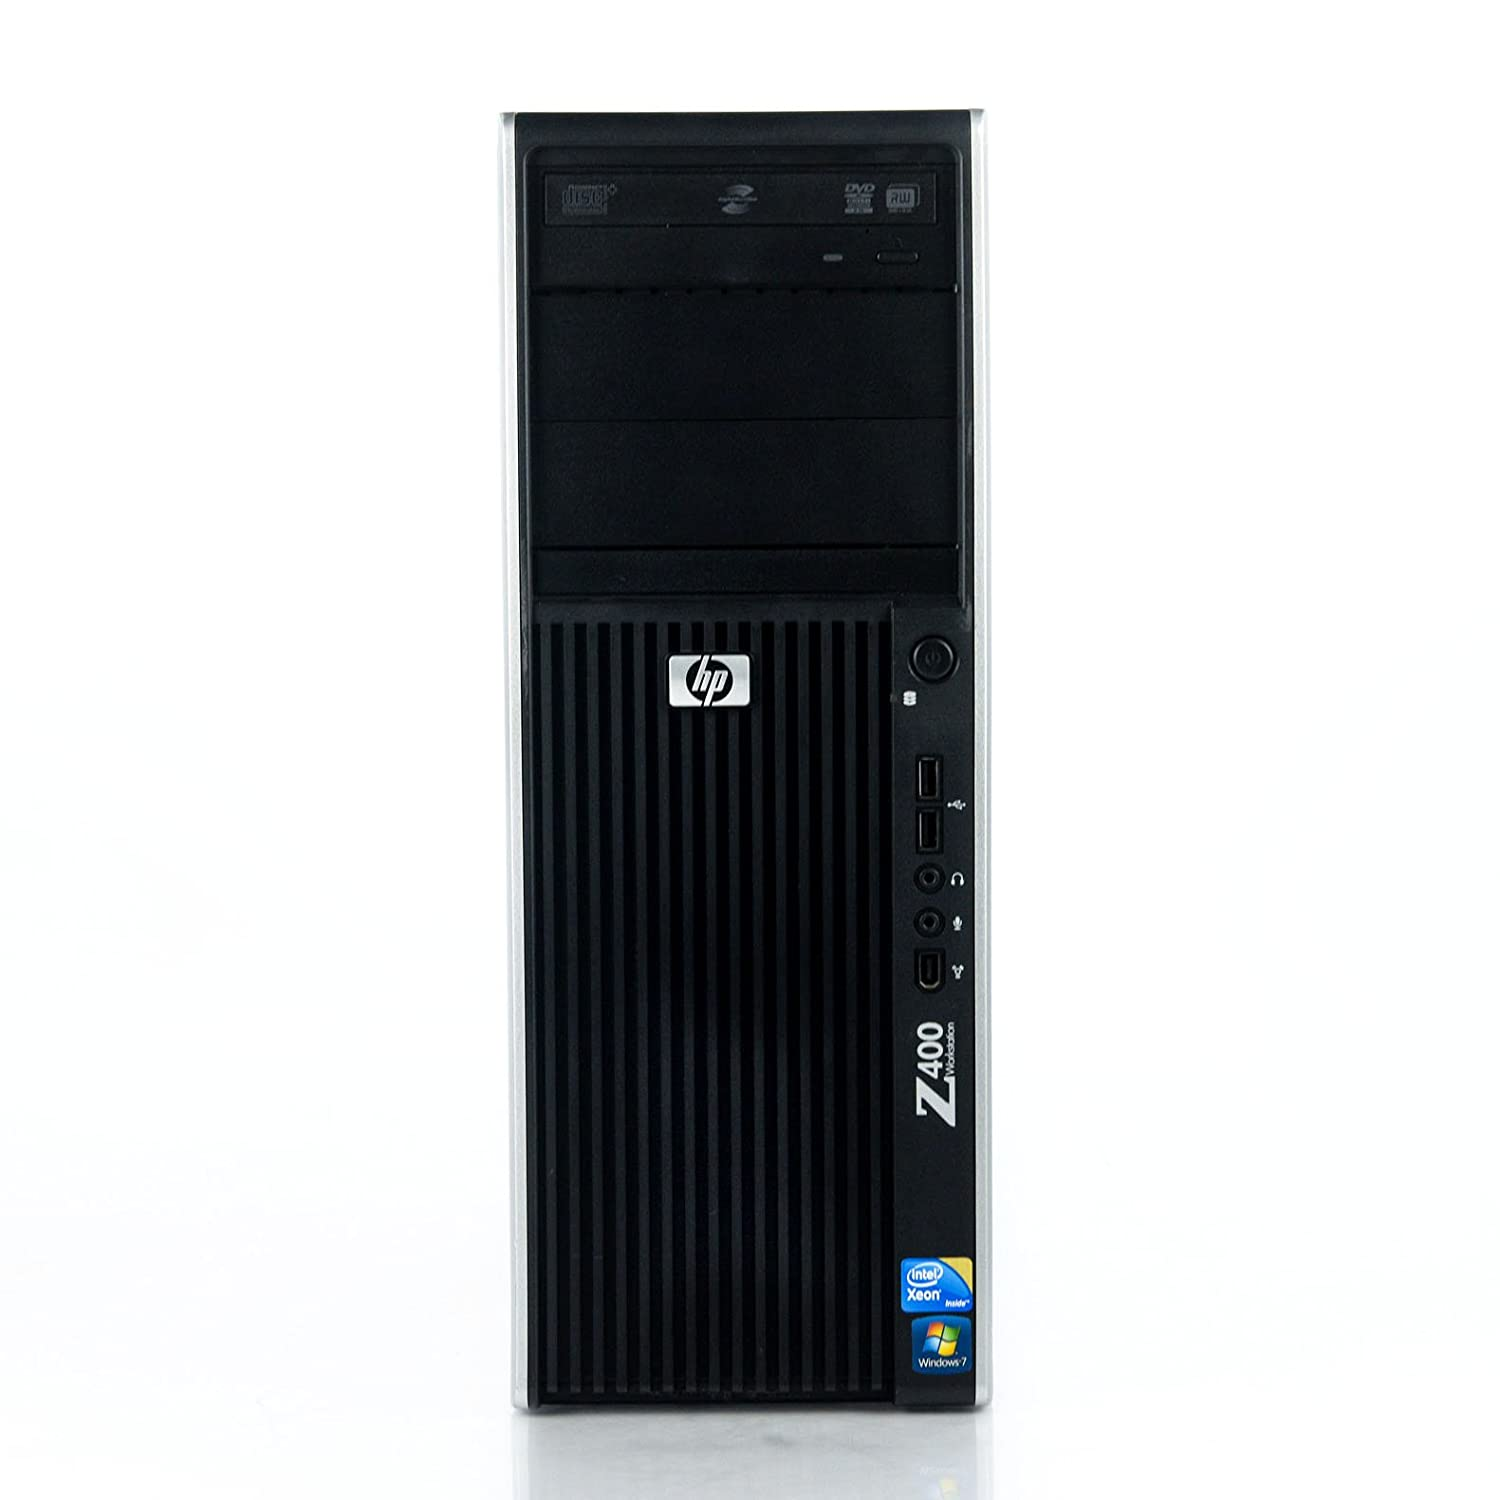 HP Z400 Workstation Xeon Quad-Core W3565 3 2GHz 8GB 1TB Win 7 Pro